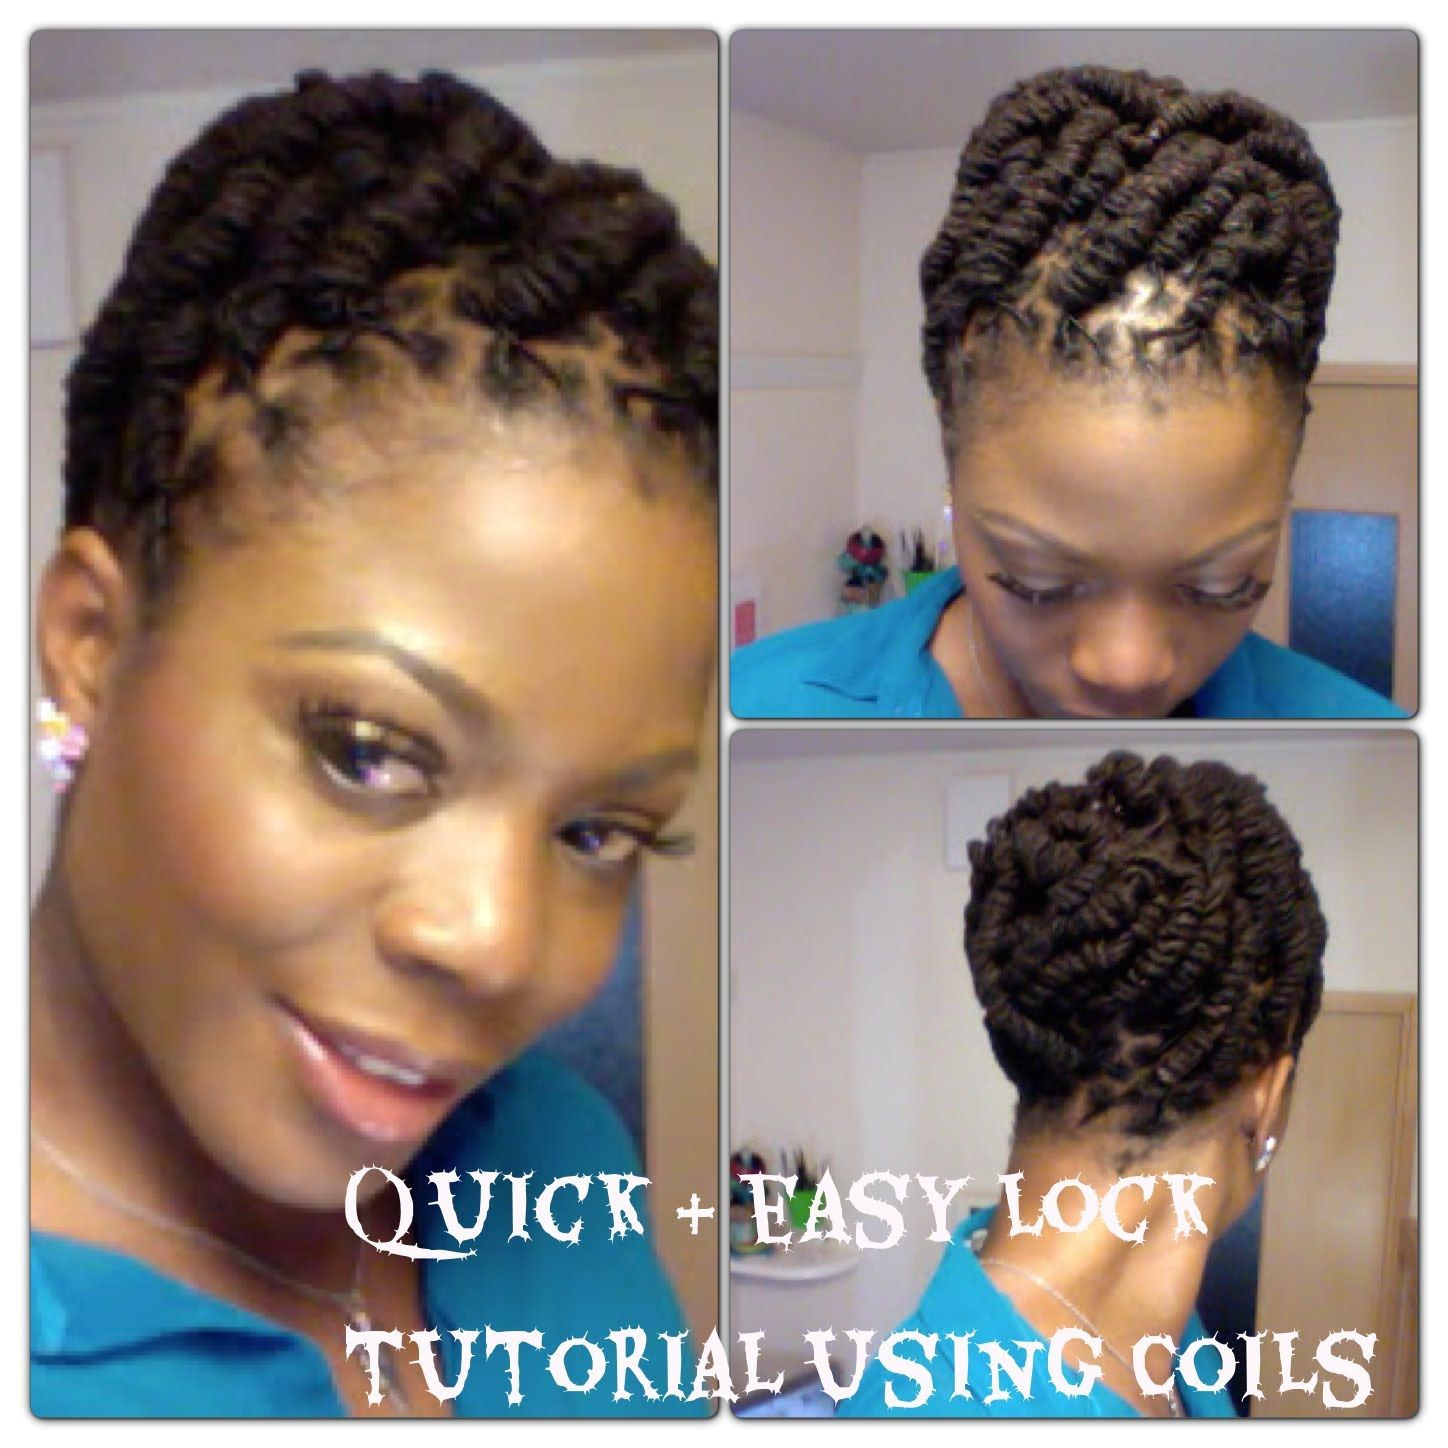 Simple and Quick Lock Hairstyle using Coils